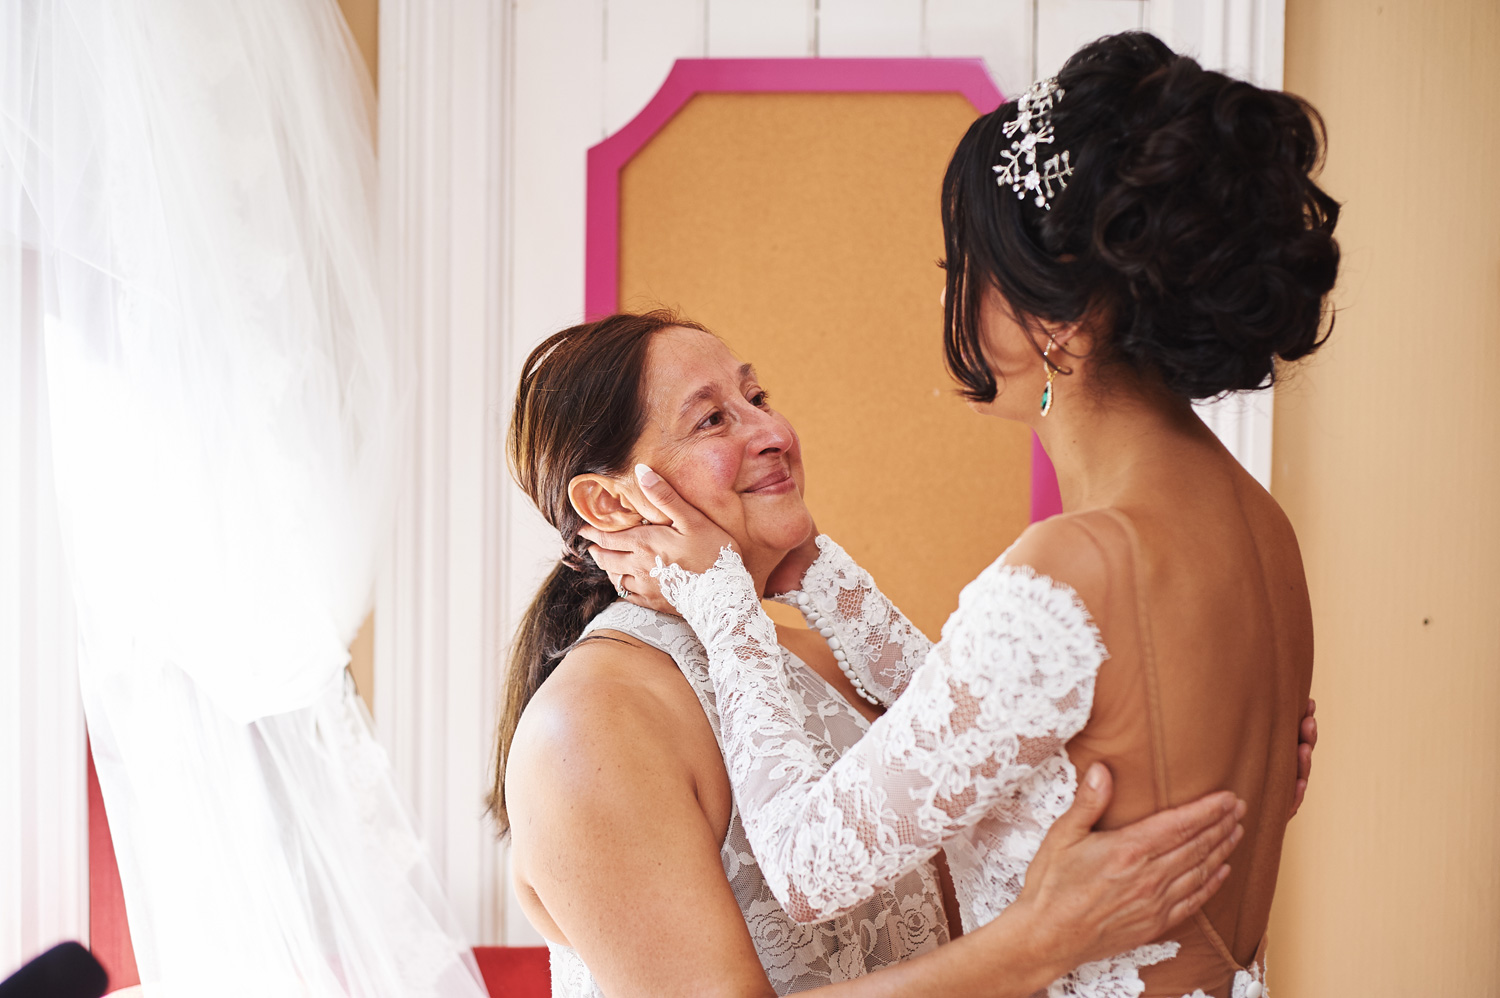 Mother-of-the-bride-helping-her-daughter-on-her-wedding-day.jpg